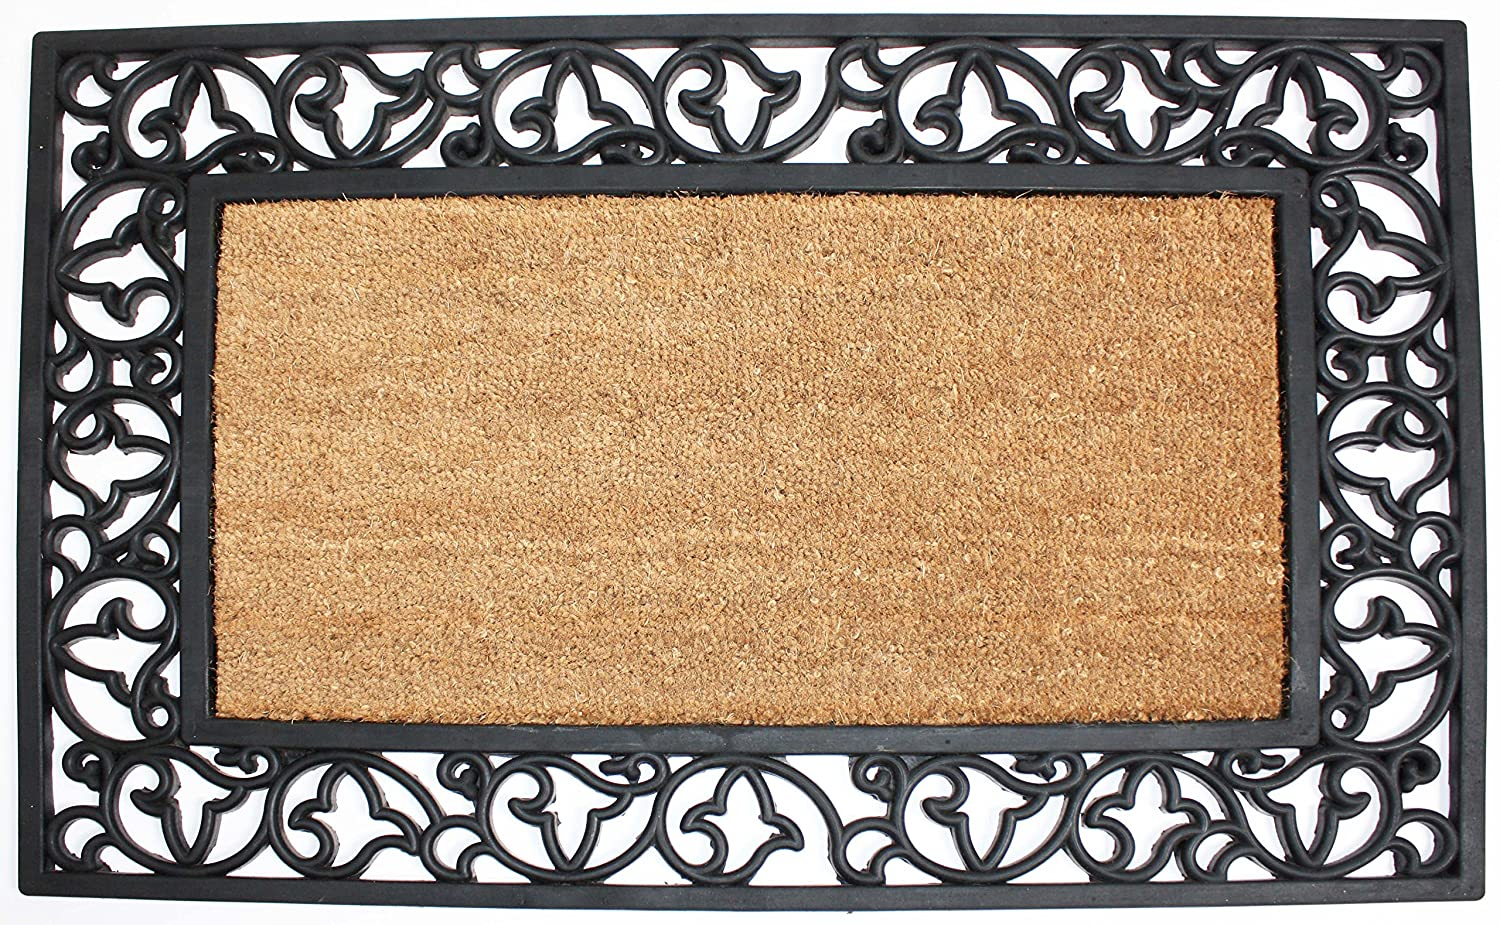 J & M Home Fashions Half Round Sunburst Coco and Rubber Doormat, 24 by 36-Inch, Beige 10590A